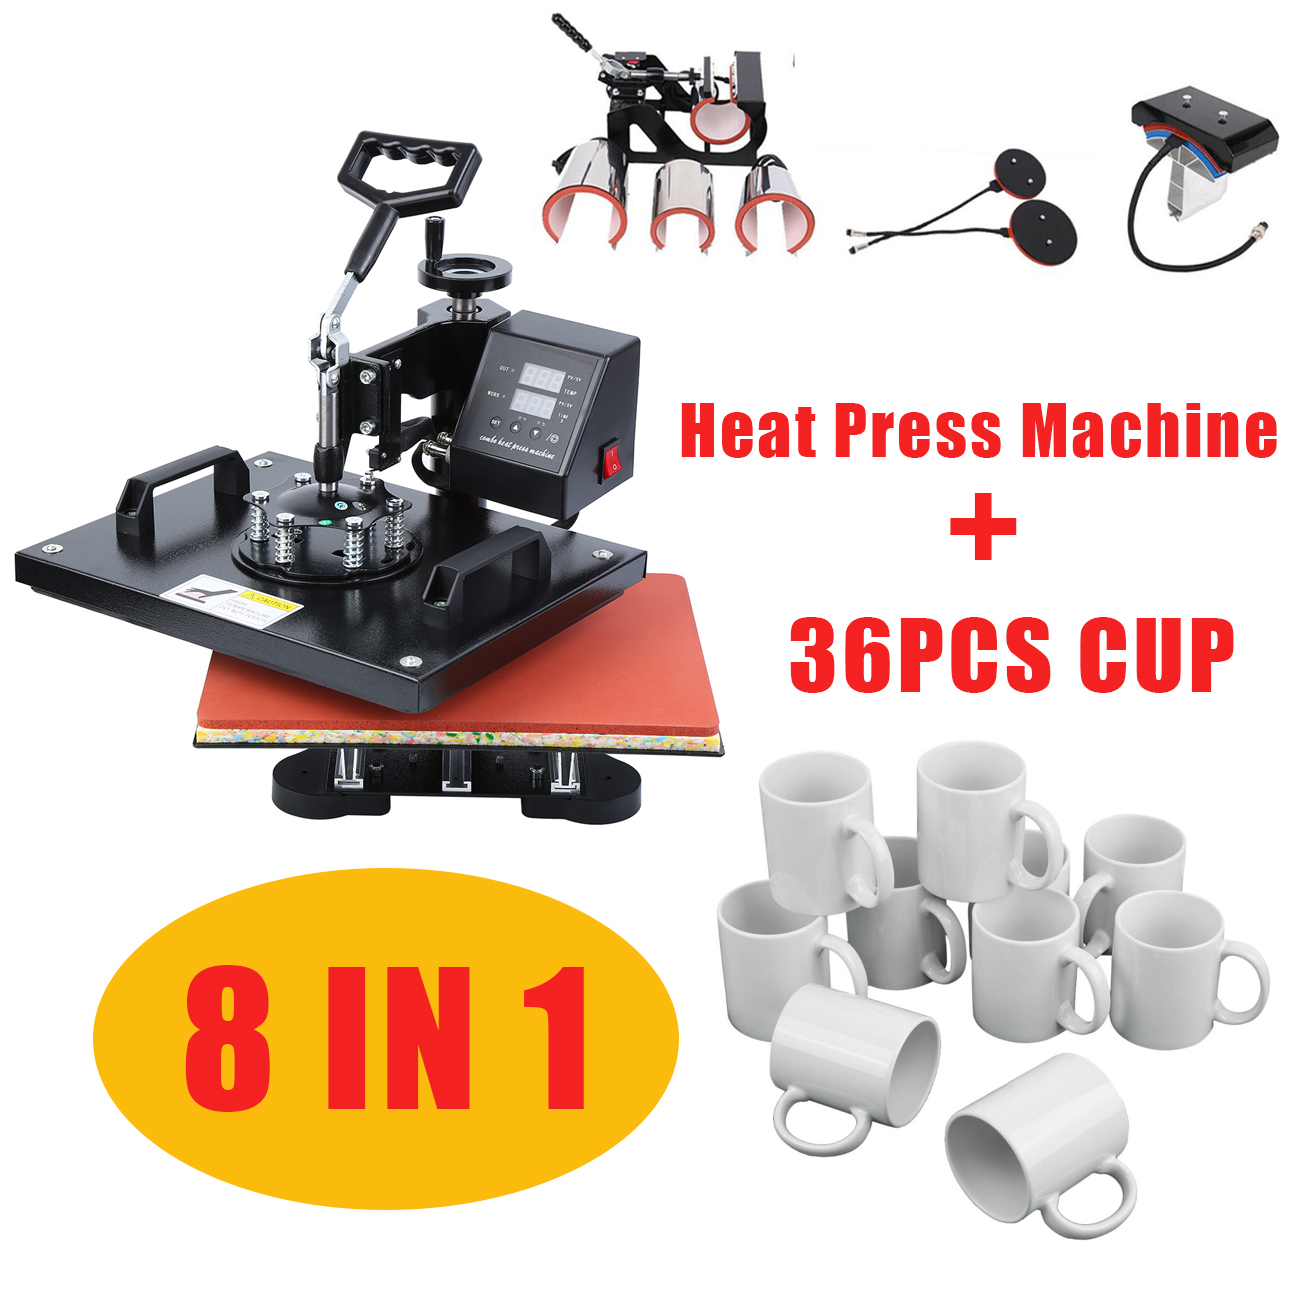 30*38CM/38*38CM 8 In 1 Combo Heat Press Machine Heat Transfer Printer Muntifunctional Sublimation For T-shirt Mug Hat Plate Cap